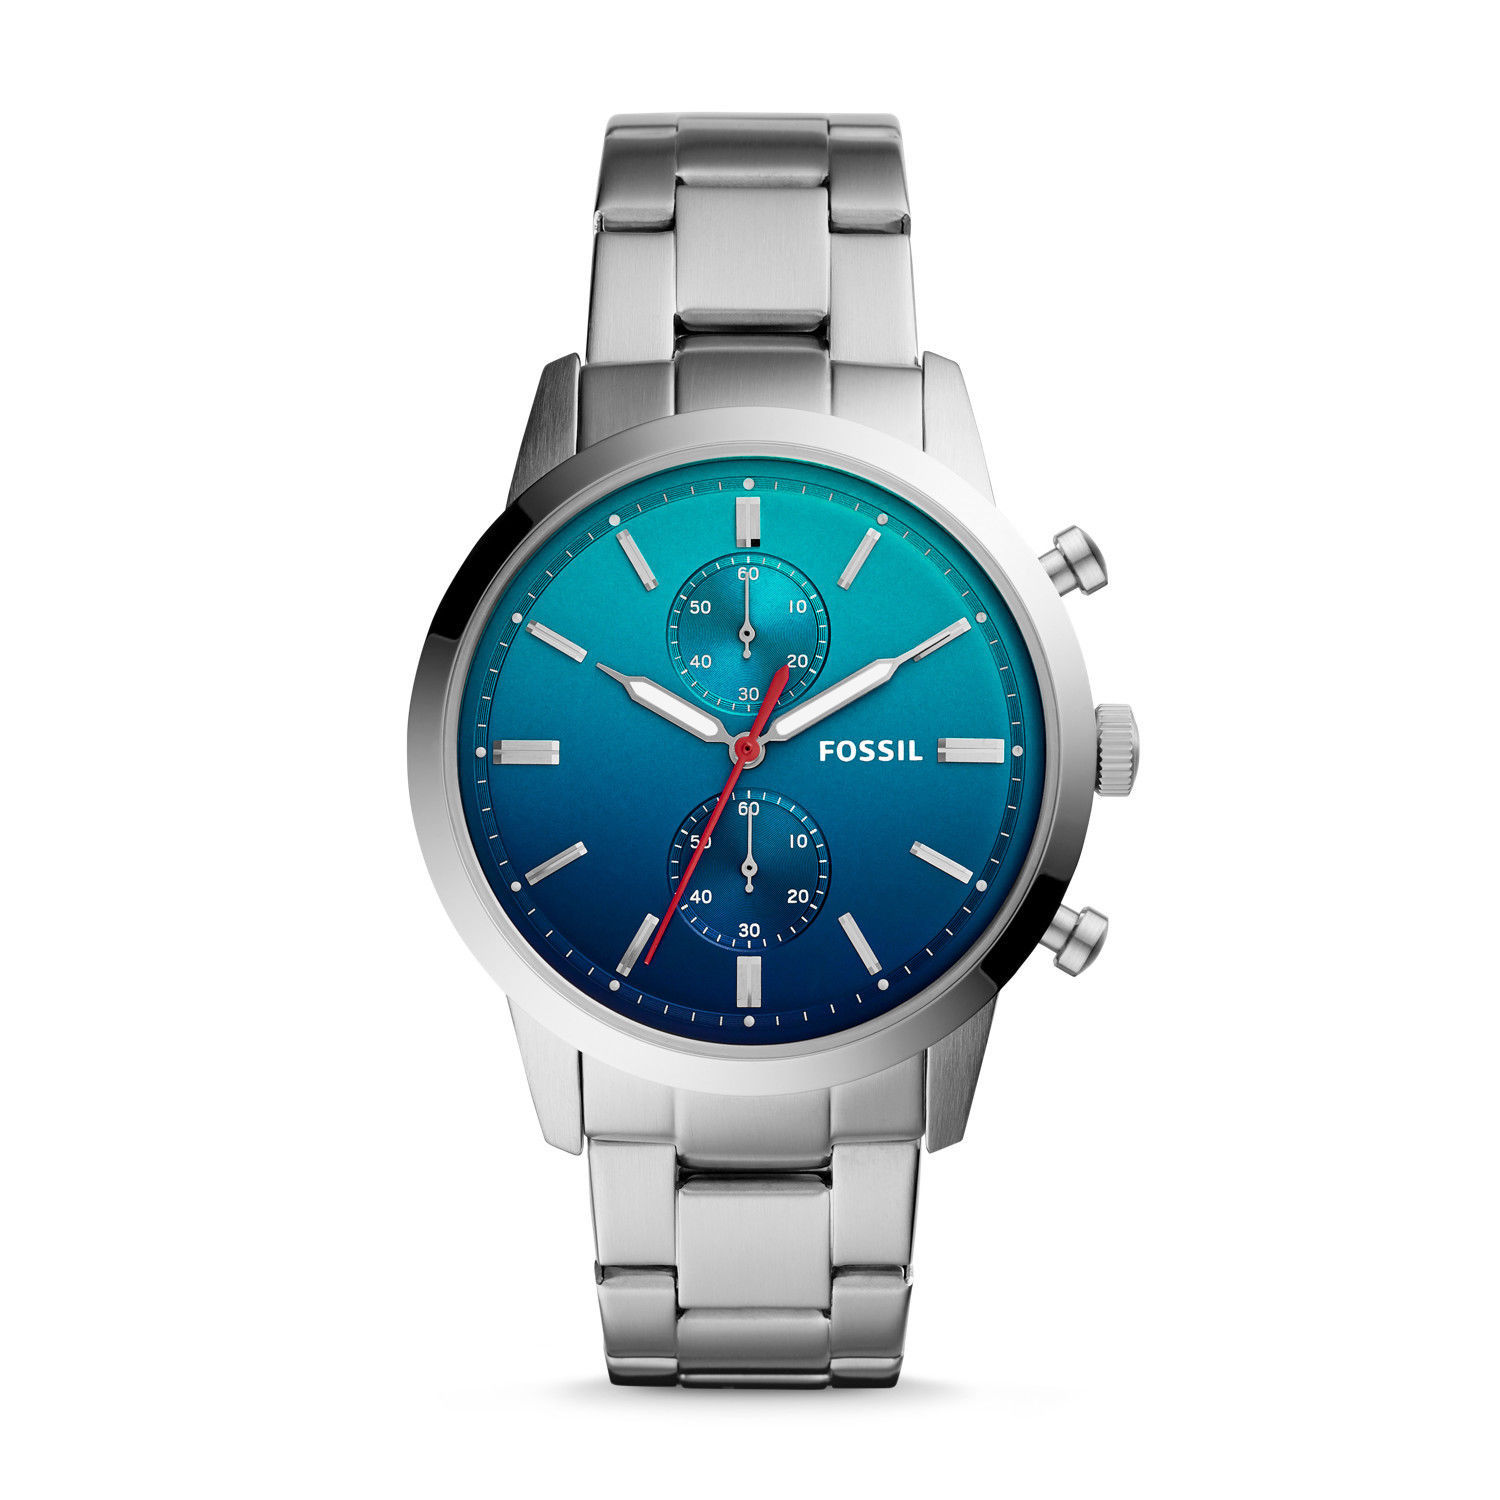 New Fossil Men's Townsman Chronograph Stainless Steel Watch Variety Color